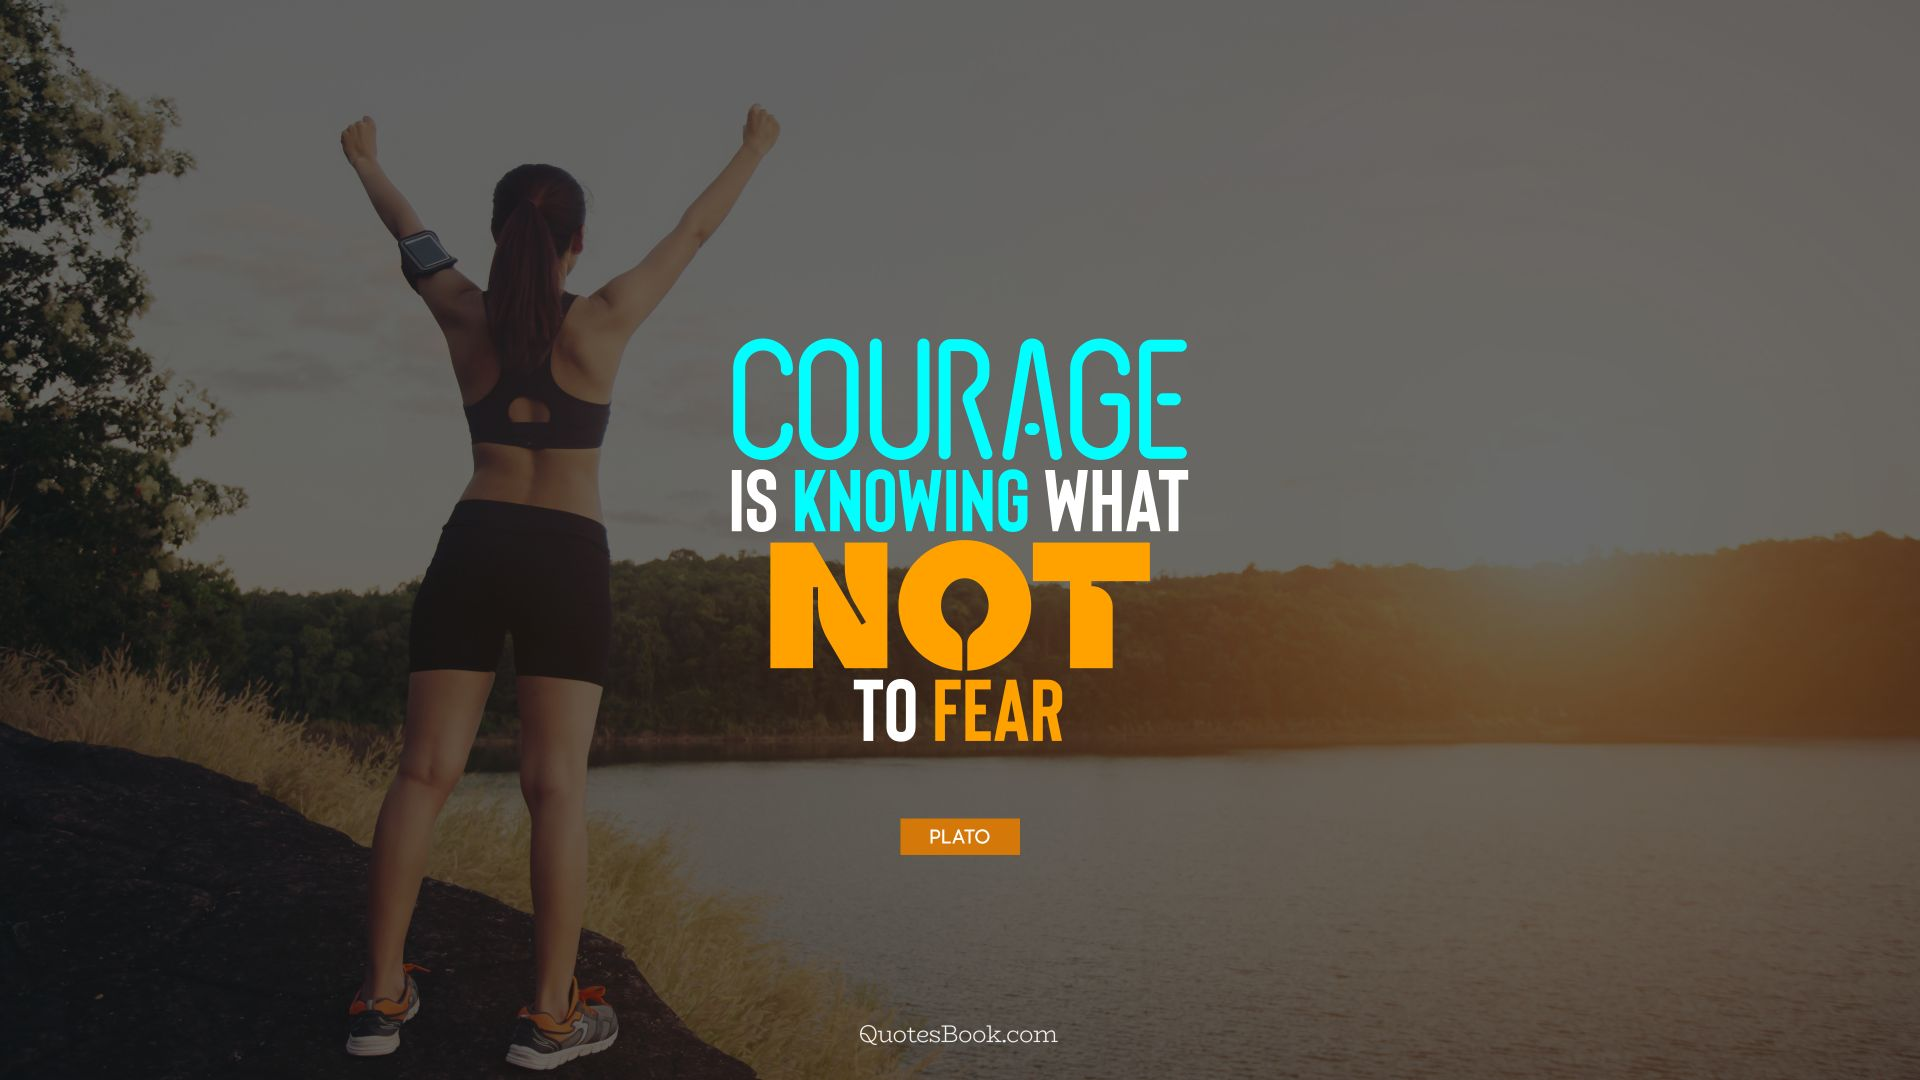 Courage is knowing what not to fear. - Quote by Plato